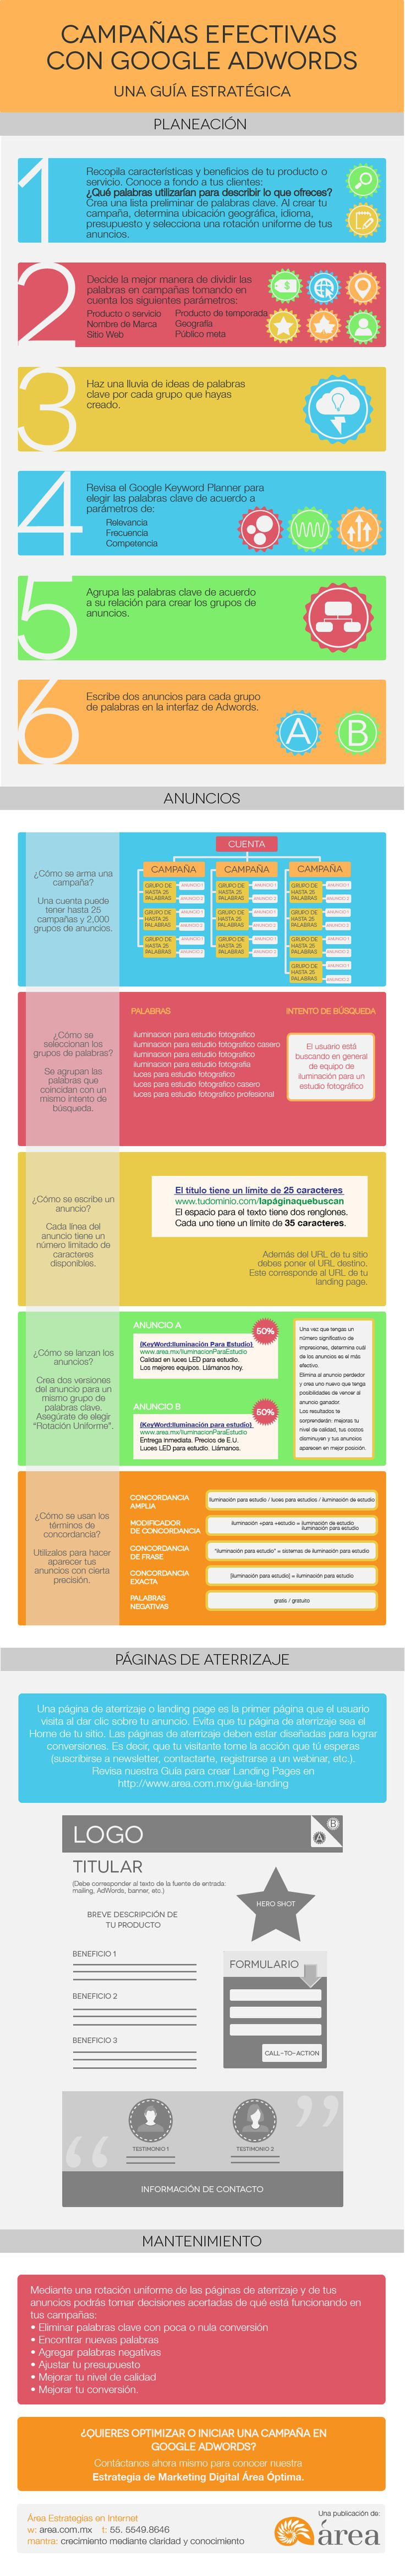 Campañas efectivas de Google Adwords Vía: area.com.mx #infografia #infographic #marketing